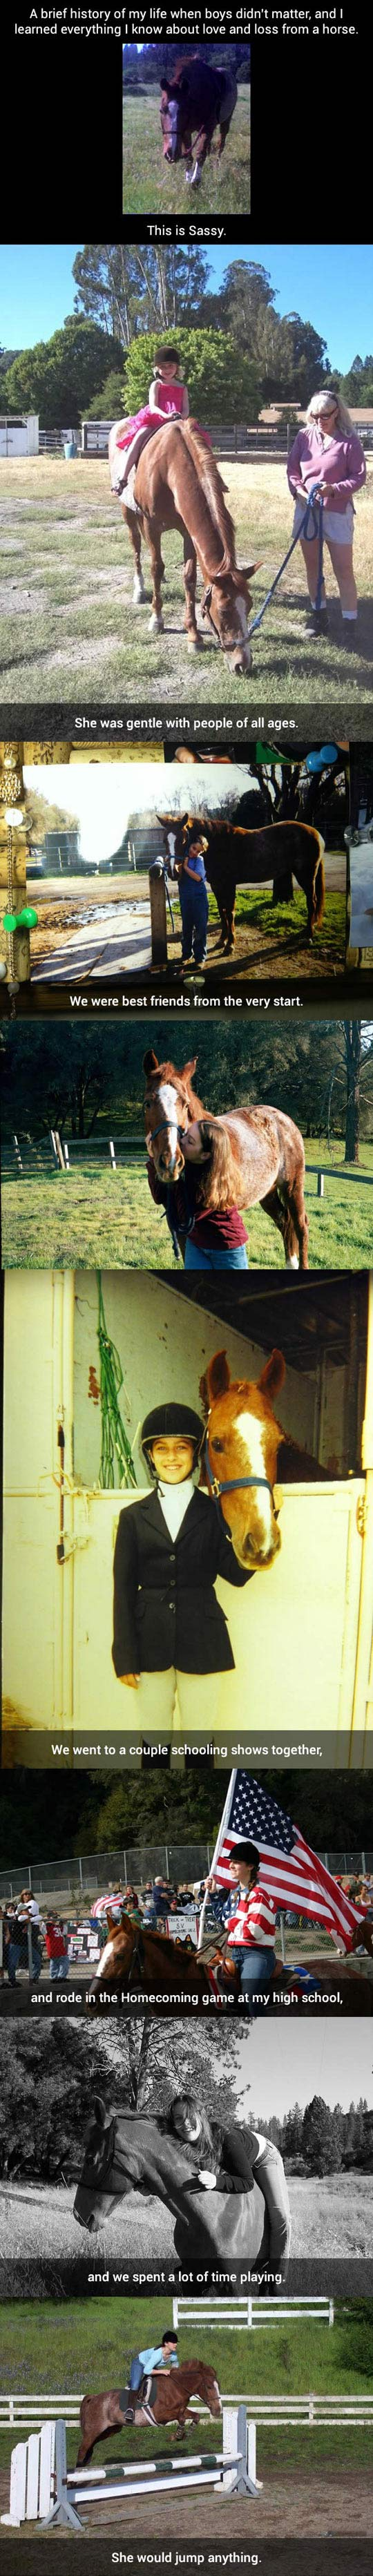 Girl and horse become best friends...